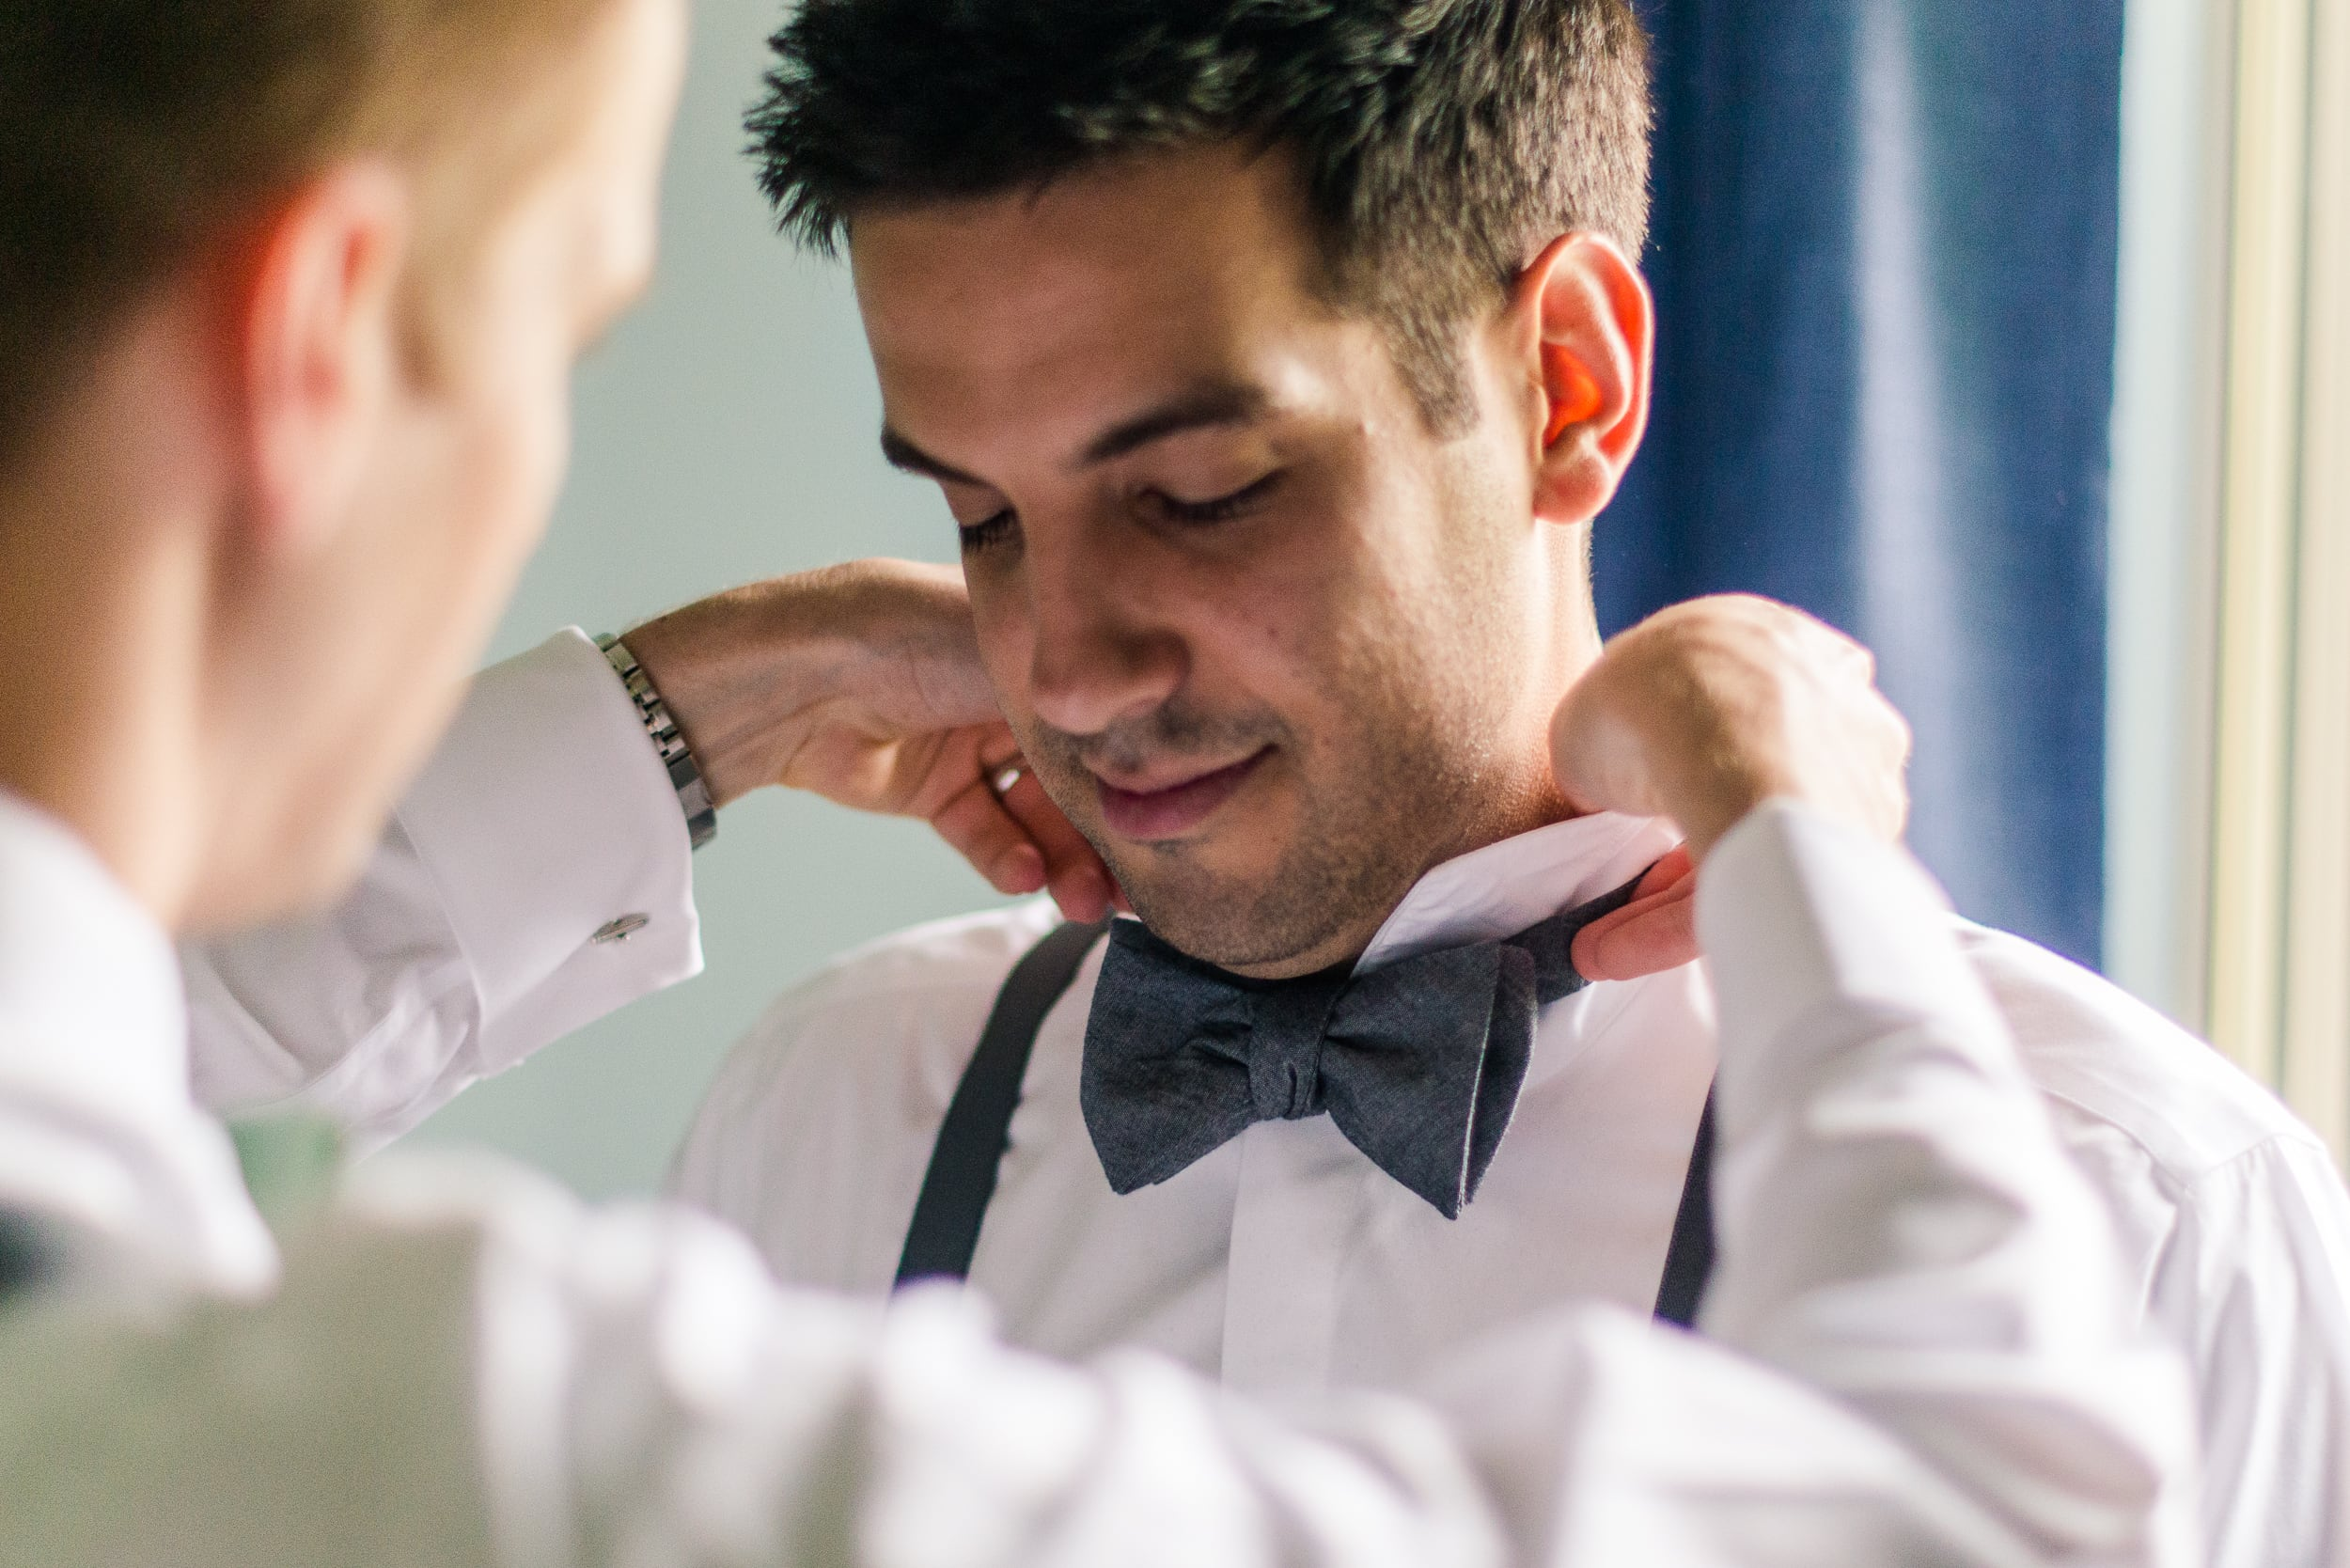 the best man helps the groom get ready for the wedding by putting on his gray bowtie by a window